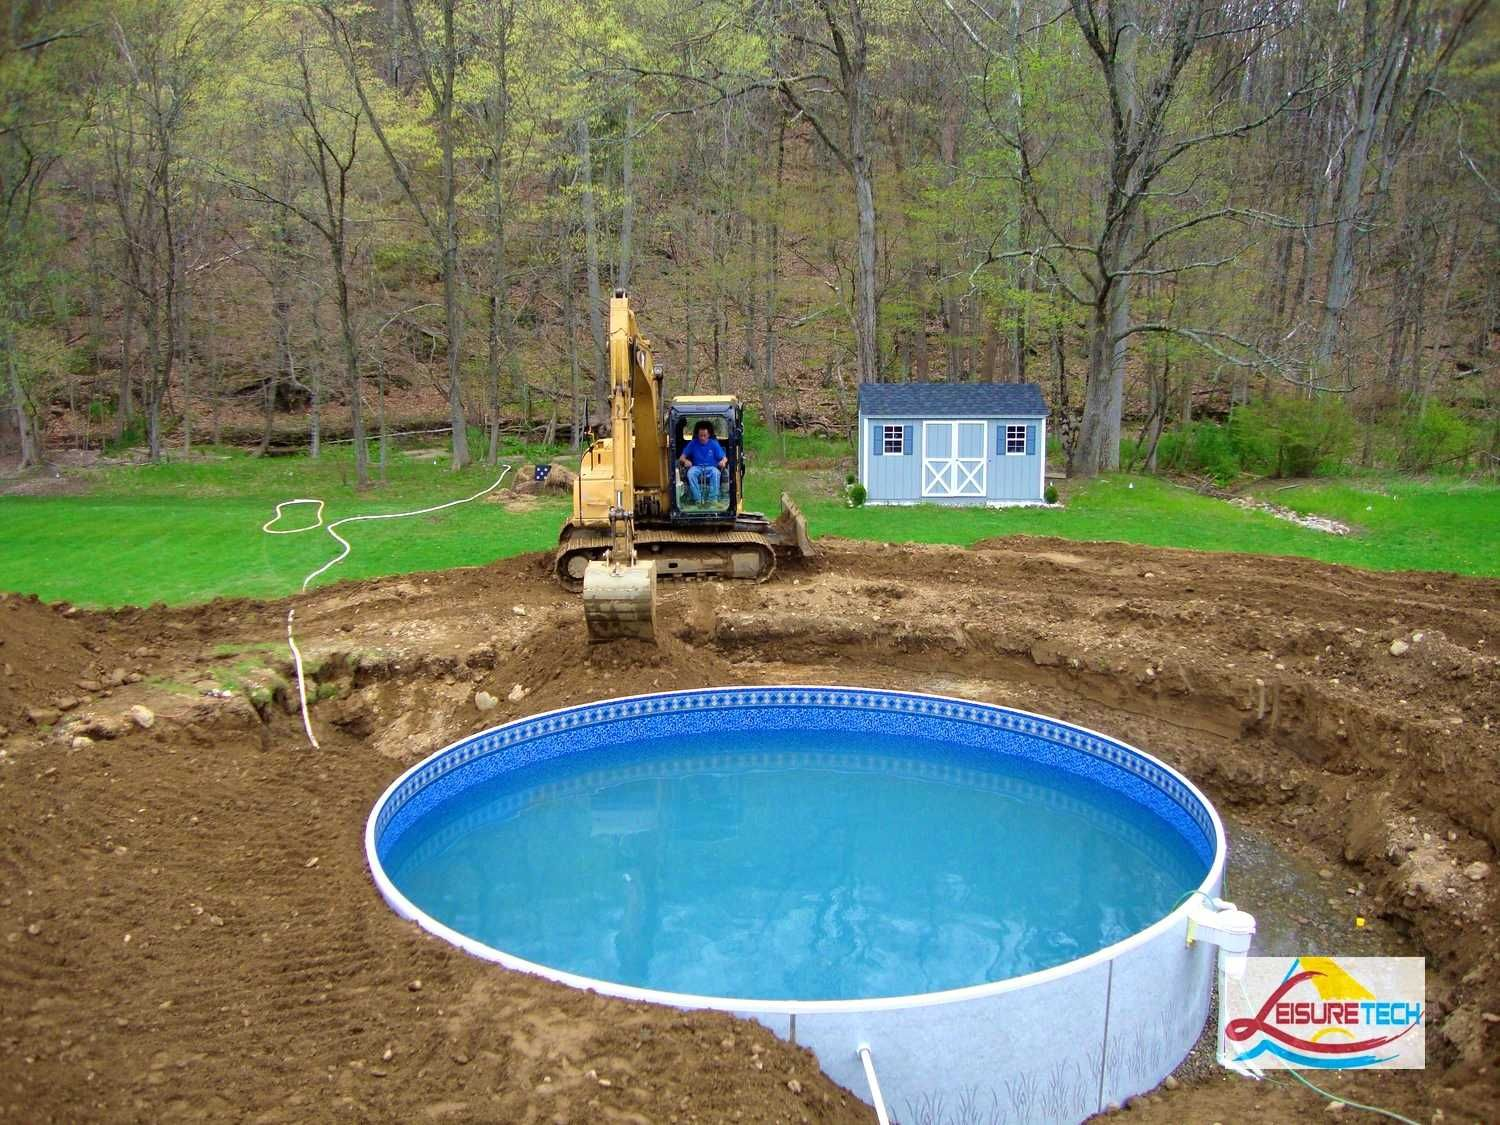 Above ground pool landscaping ideas on a budget garden - Above ground pool ideas on a budget ...